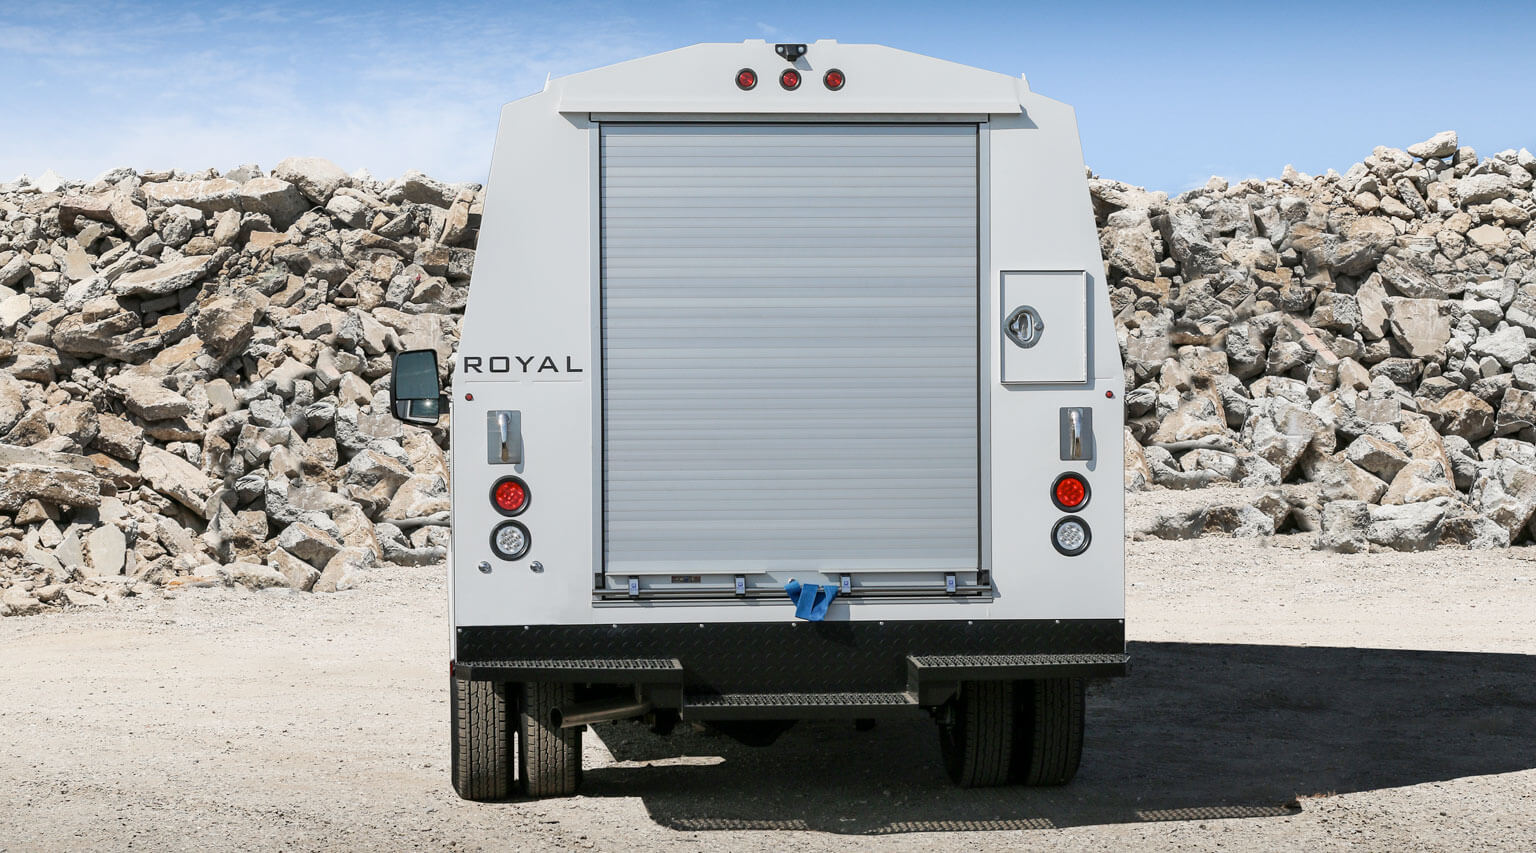 RSV 11 foot 75 inch tall DRW cab chassis mount by Royal Truck Body